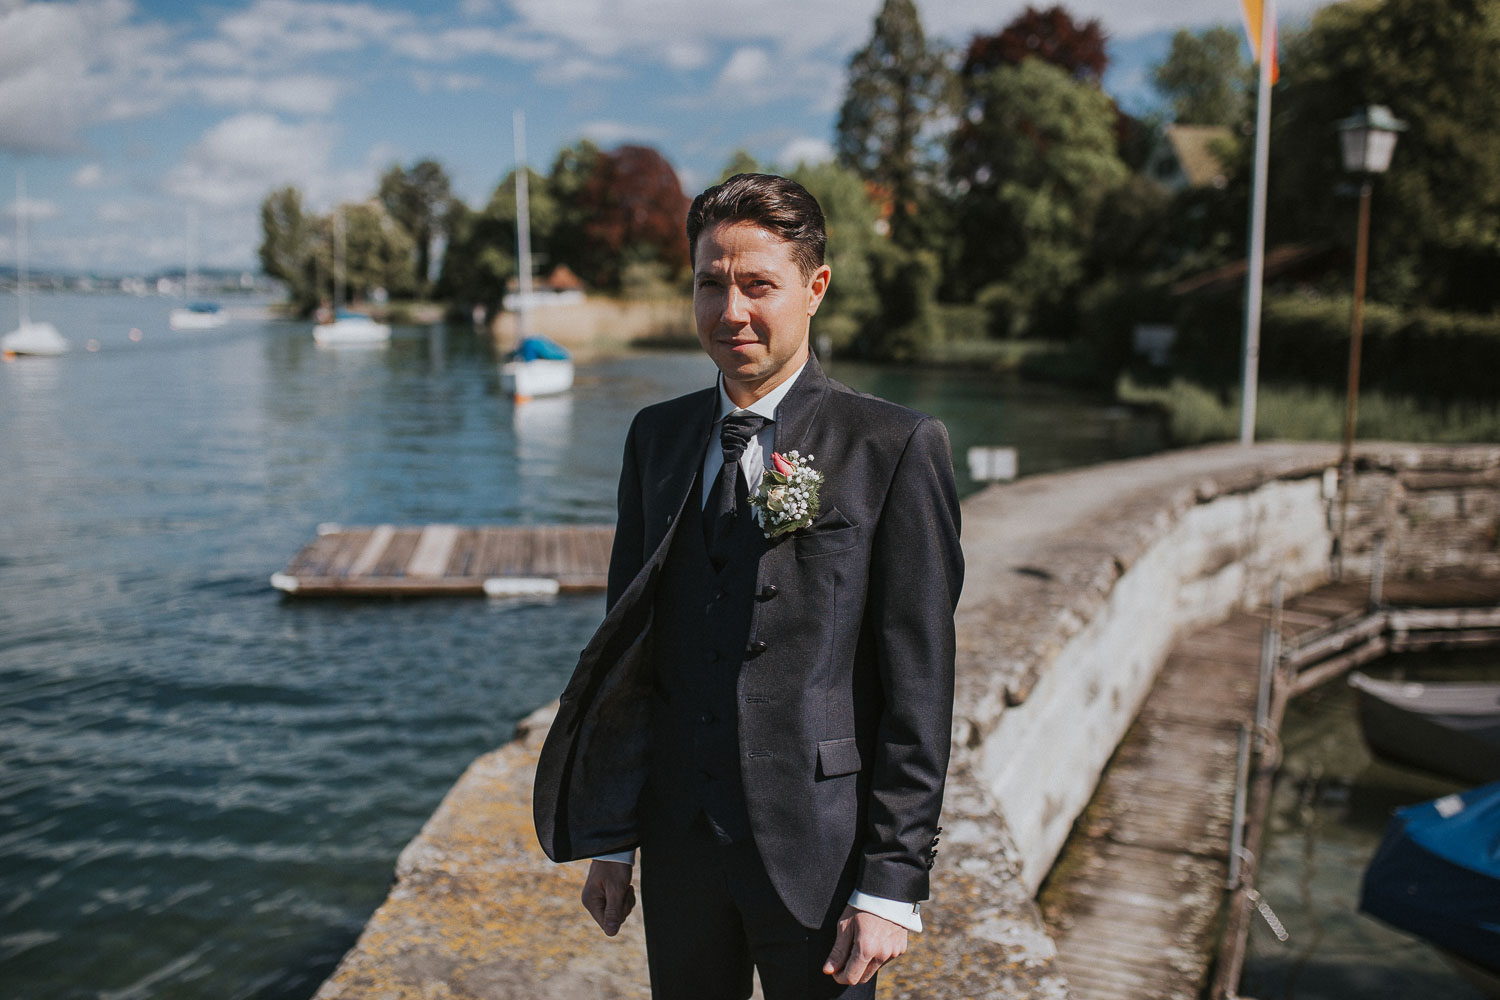 wedding photographer in Küsnacht Zurich